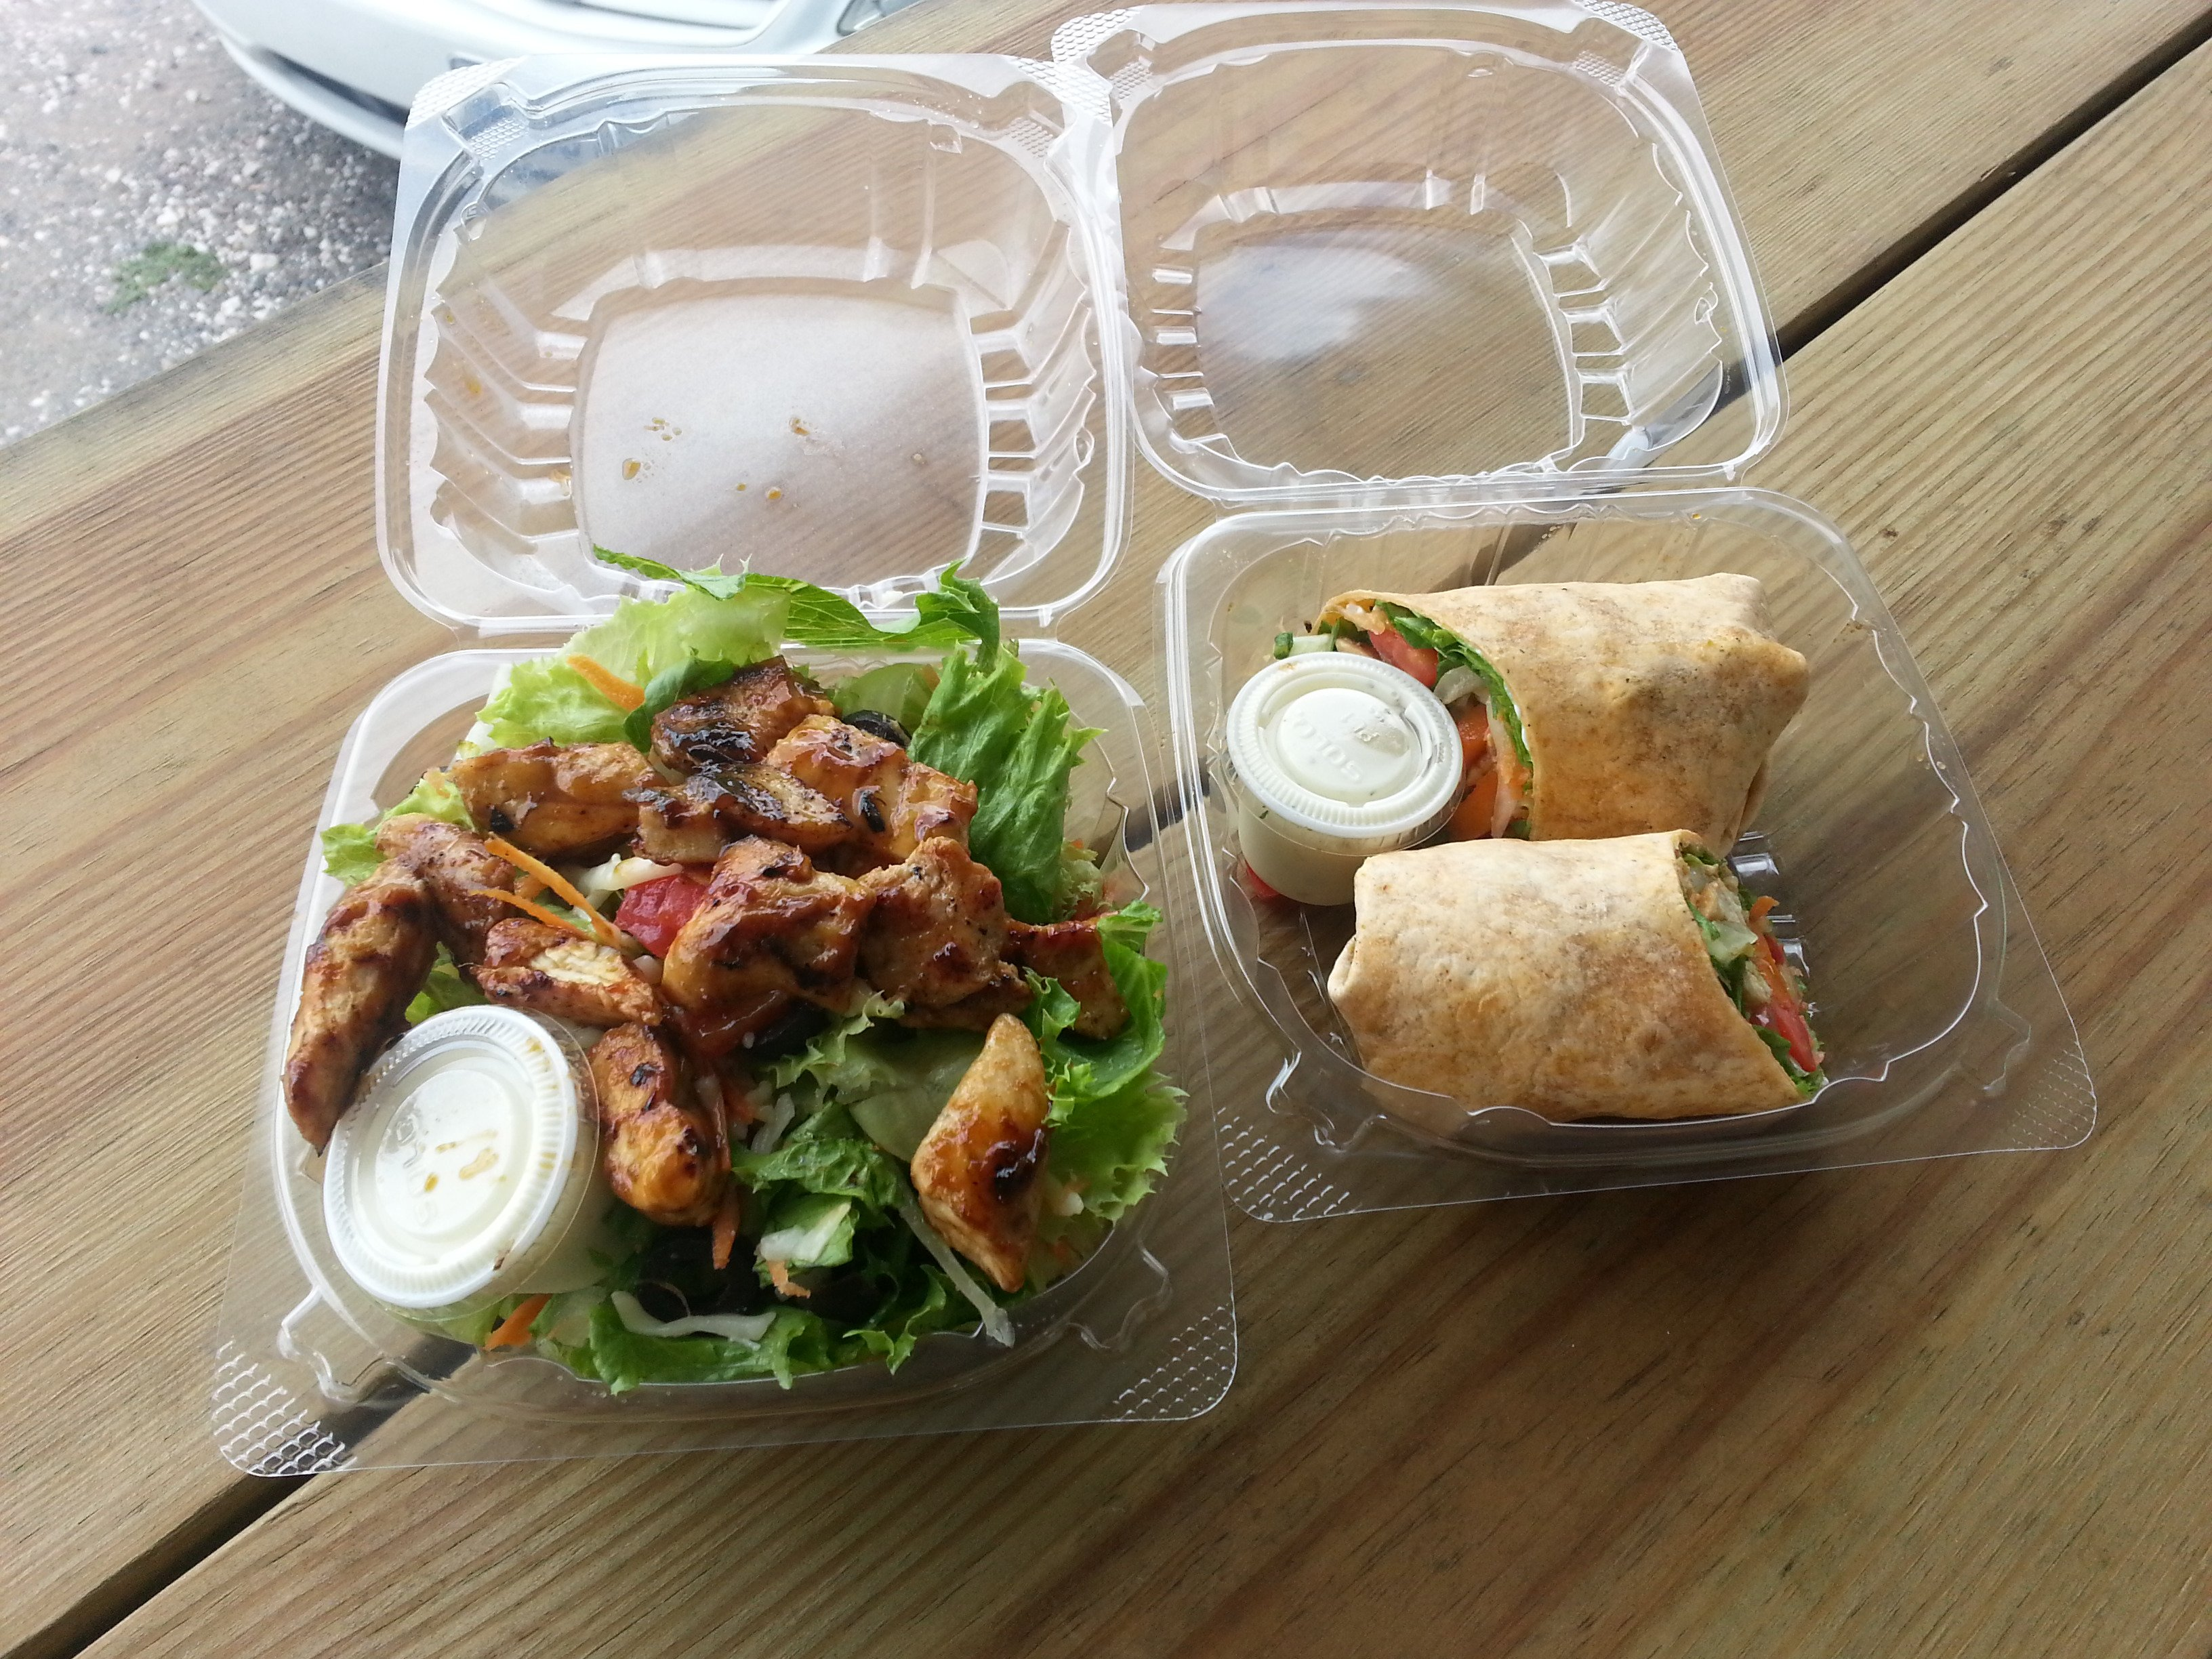 Wrap and Salad at Toss and Roll Kingston Jamaica